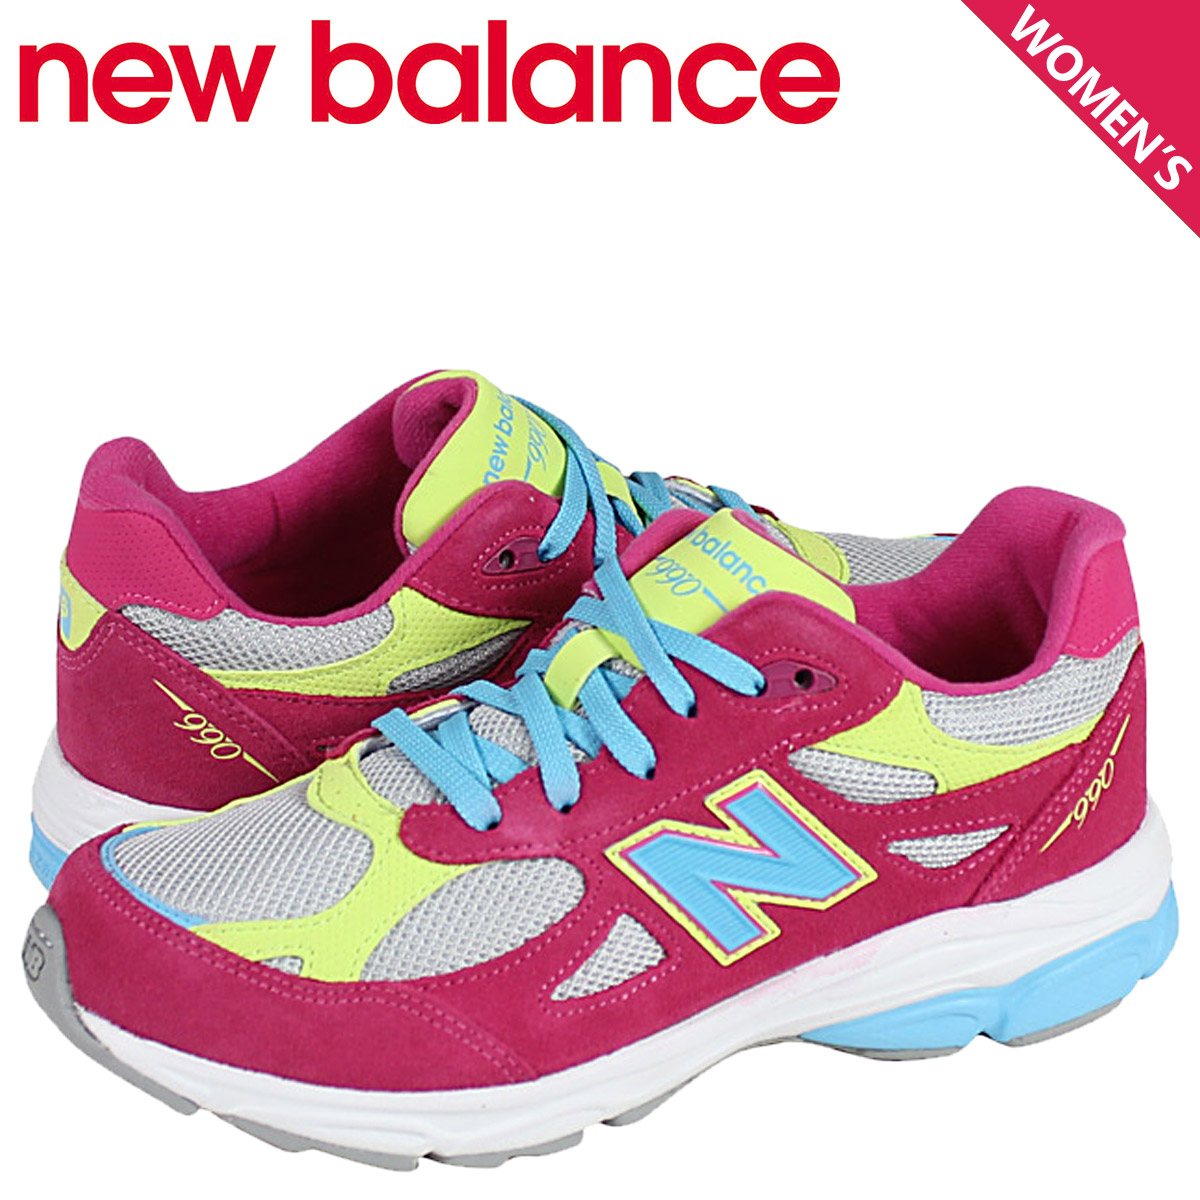 sports shoes 7ccd1 08812 new balance New Balance kids Lady's sneakers KJ990SWG M Wise shoes pink